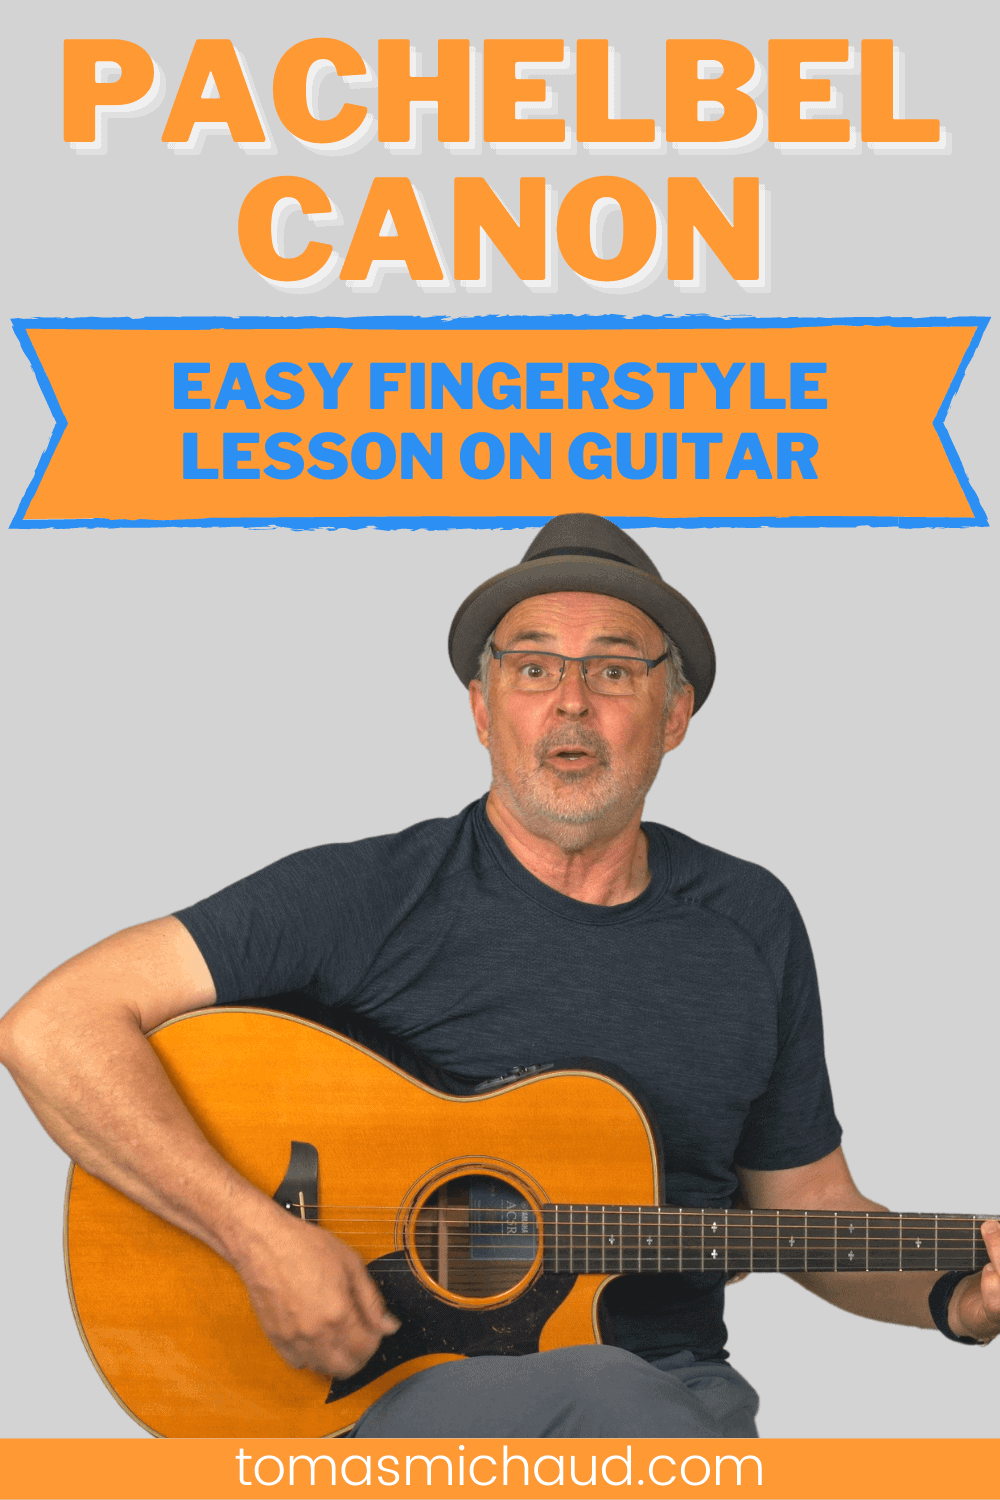 PACHELBEL CANON EASY FINGERSTYLE LESSON ON GUITAR